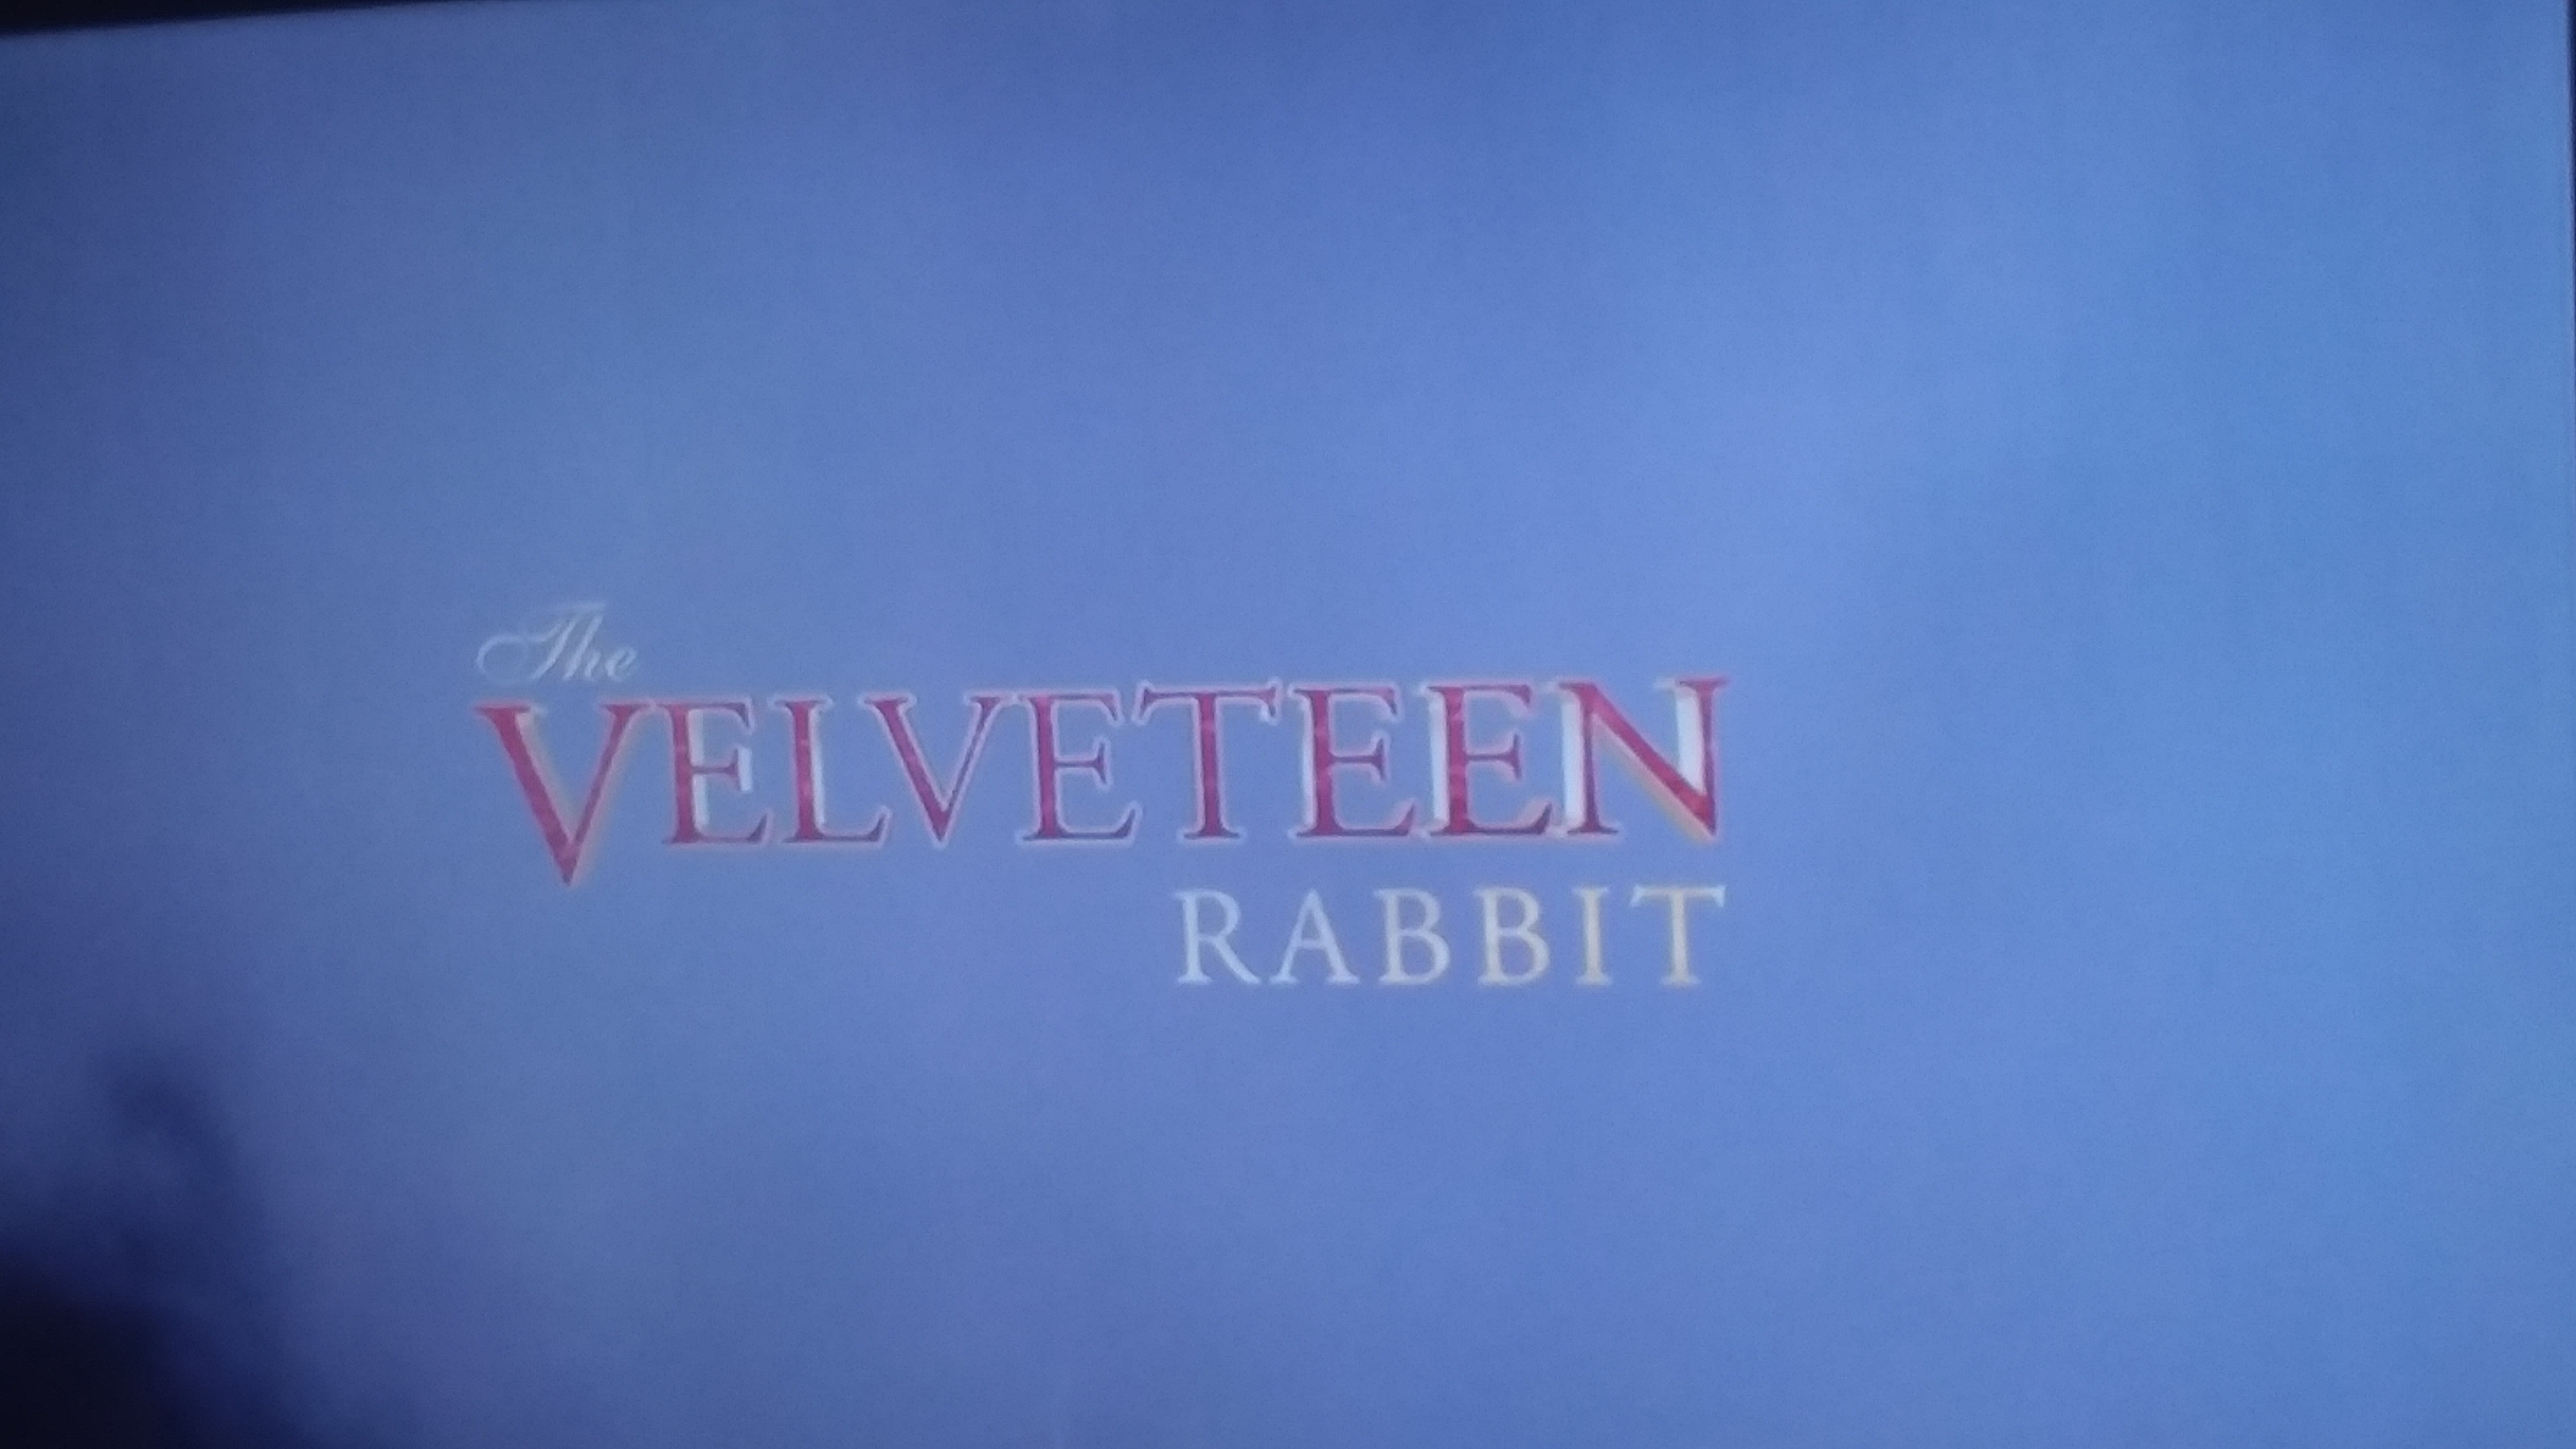 The Velveteen Rabbit (2008)